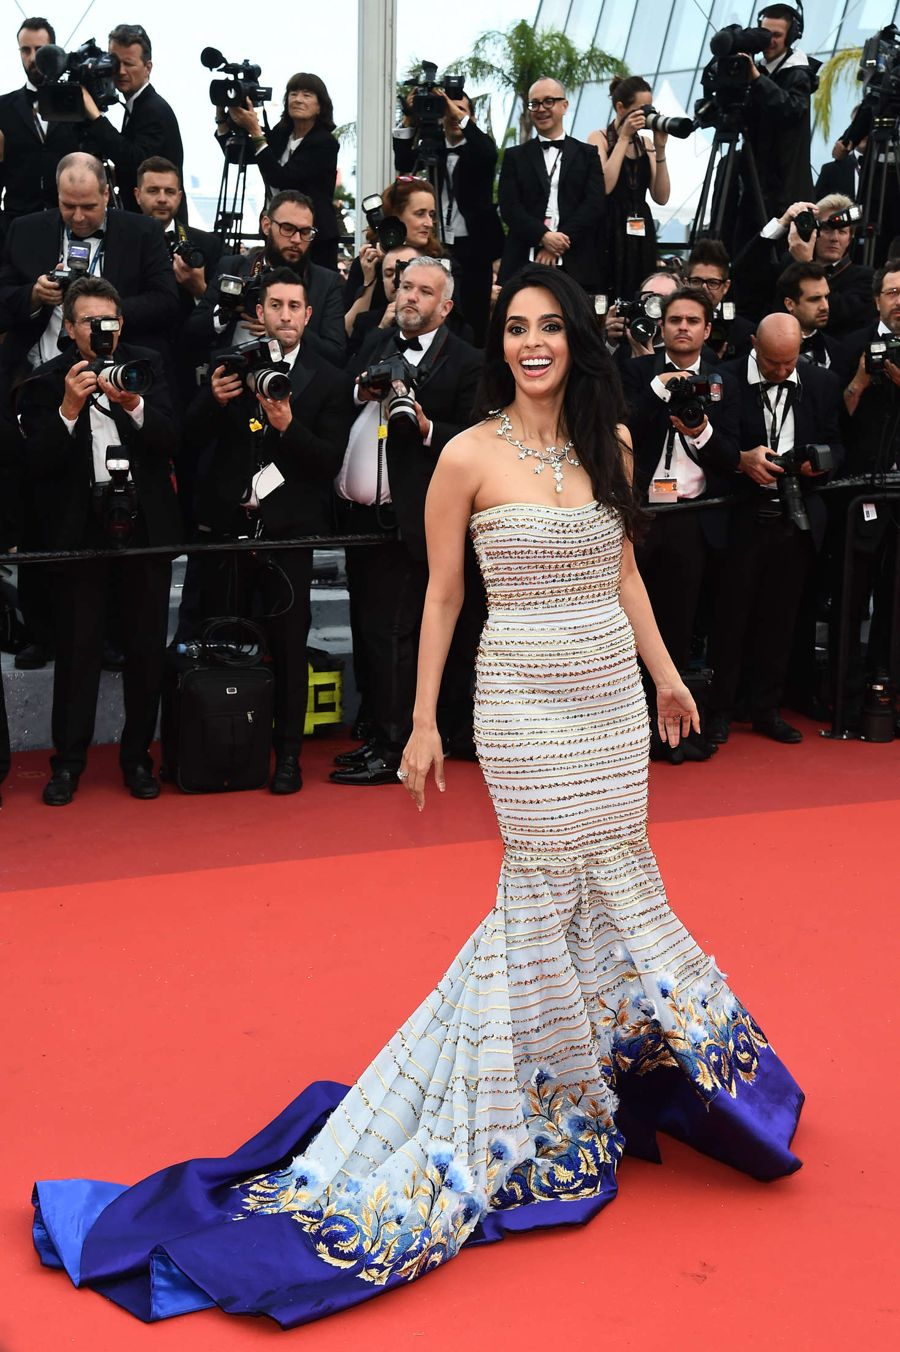 Mallika Sherawat 'Cafe Society' Opening Gala at Cannes